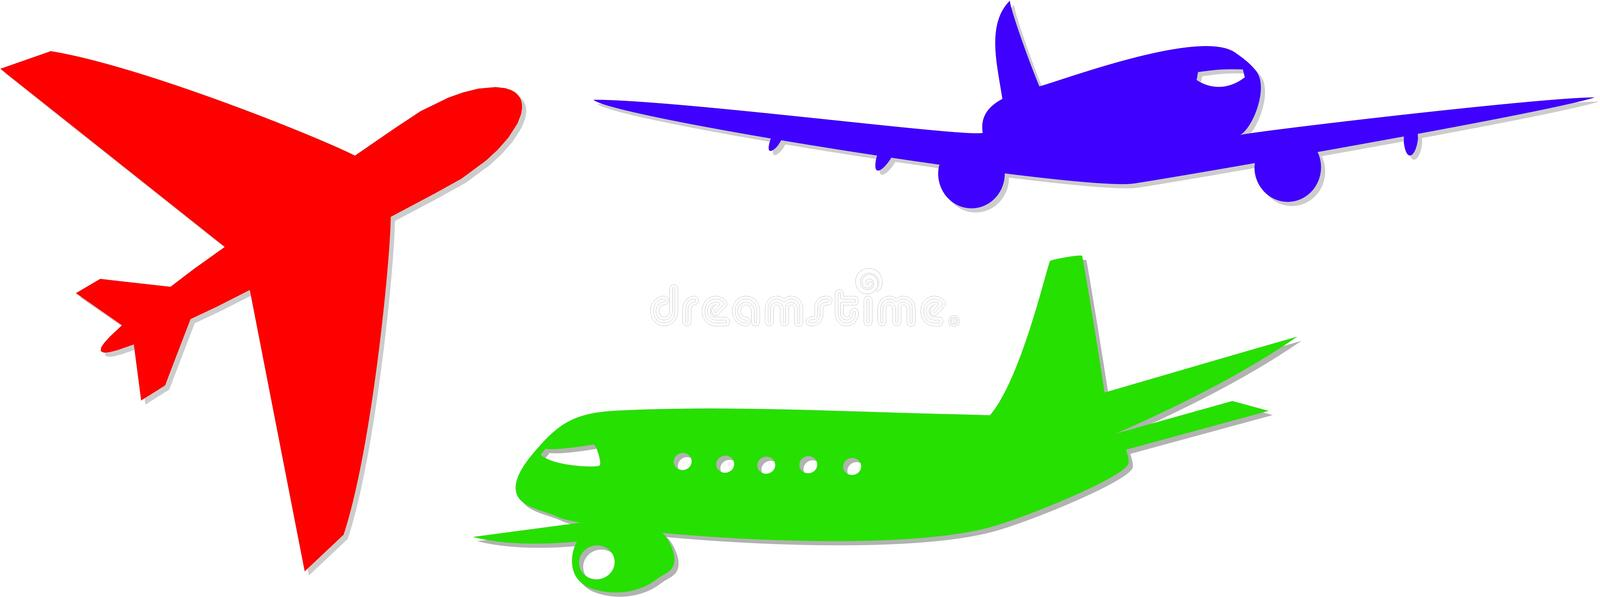 Jumbo jet icons royalty free illustration